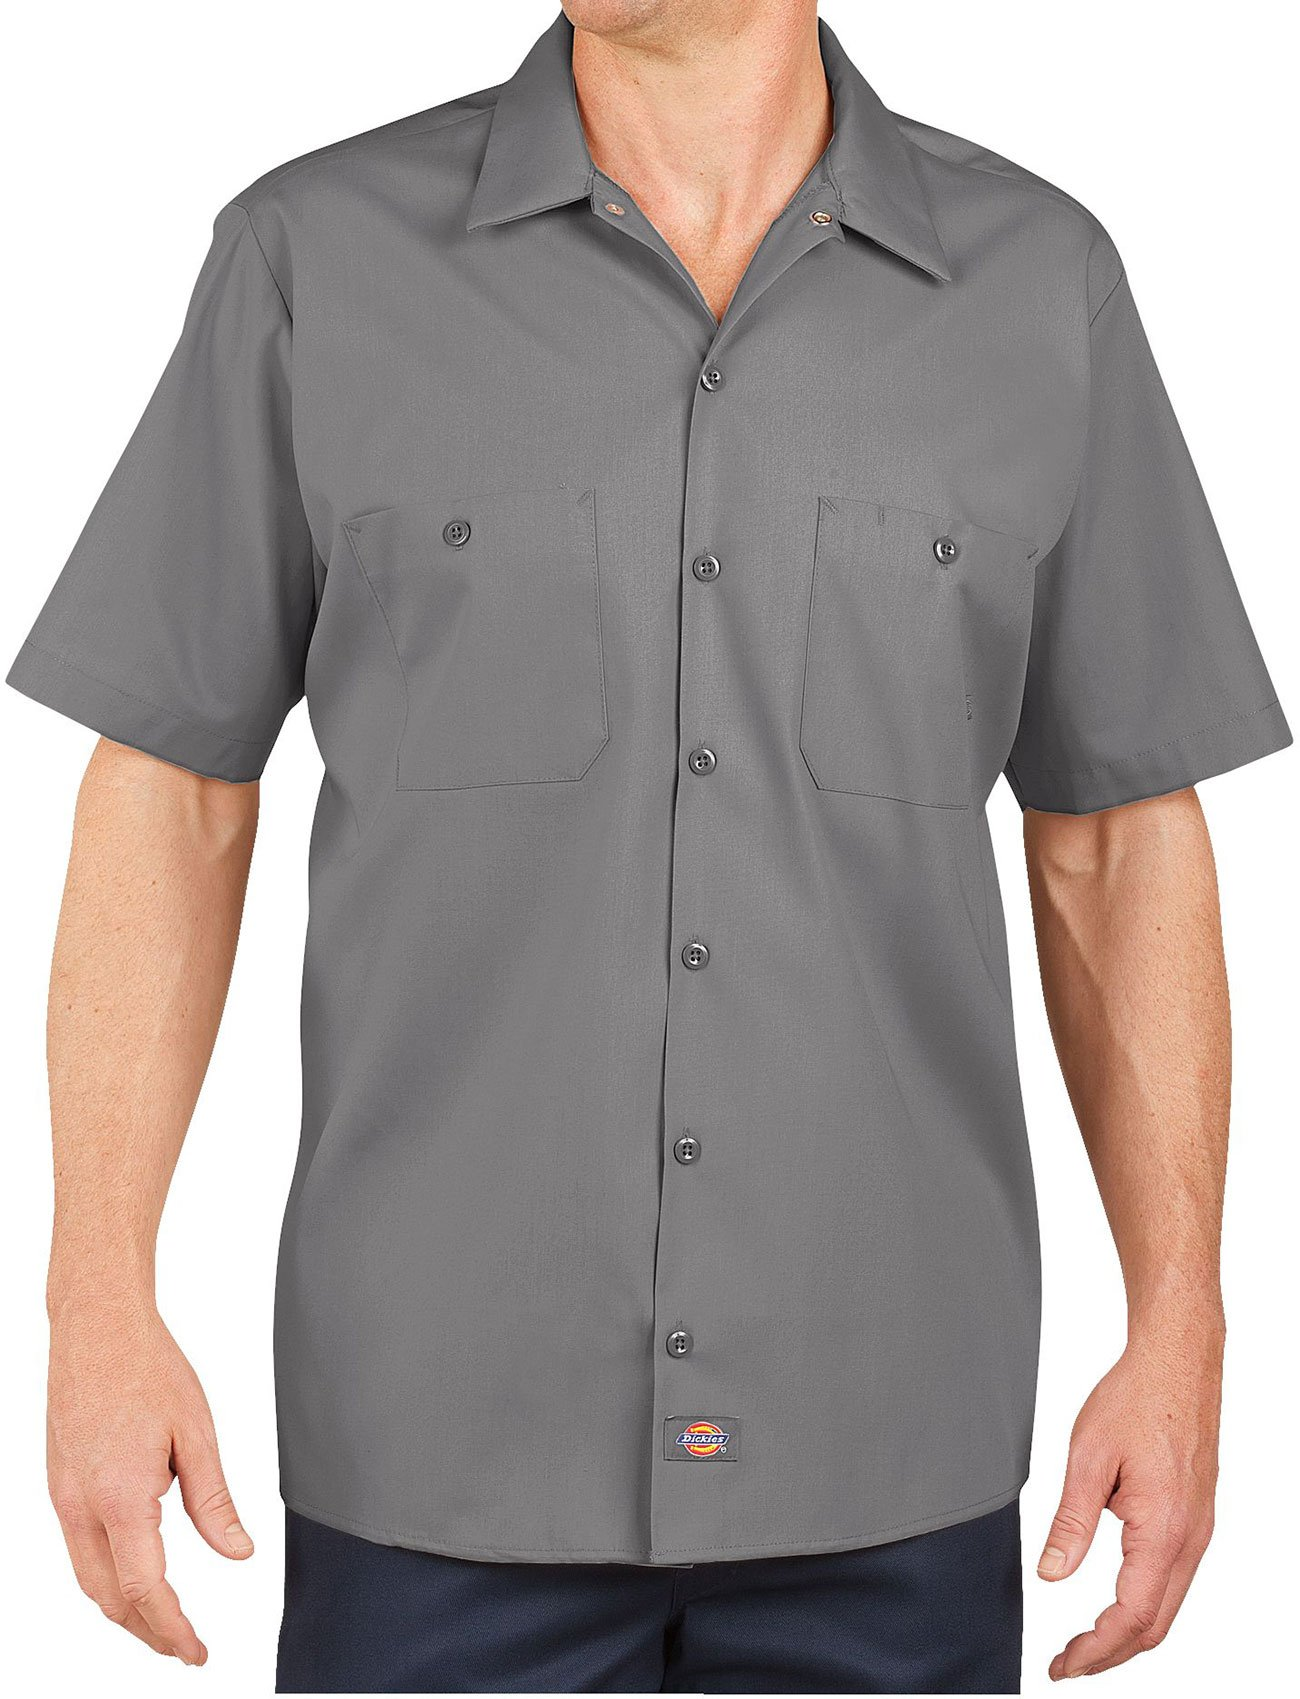 Dickies Occupational Workwear LS535GGL LS535 Industrial Short Sleeve Work Shirt, Fabric, Large, Graphite Gray